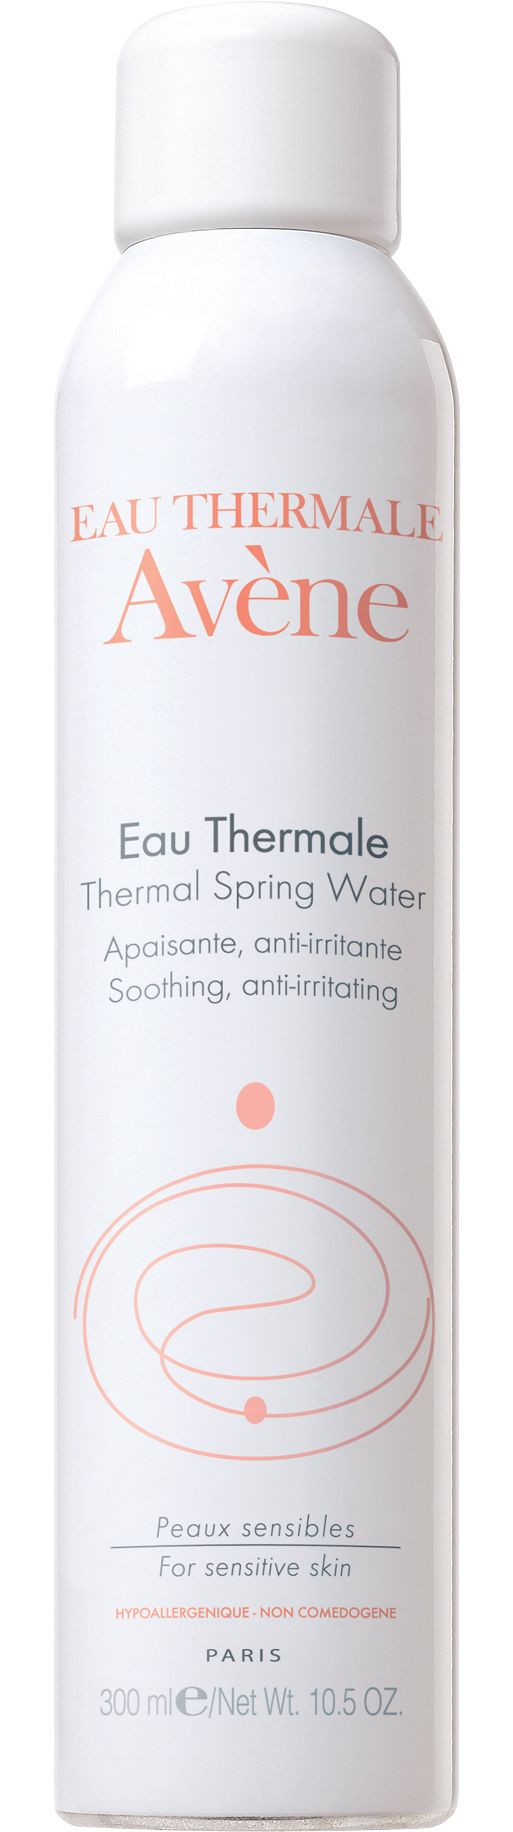 Avene Thermale Spring Water Spray | The House of Beccaria~